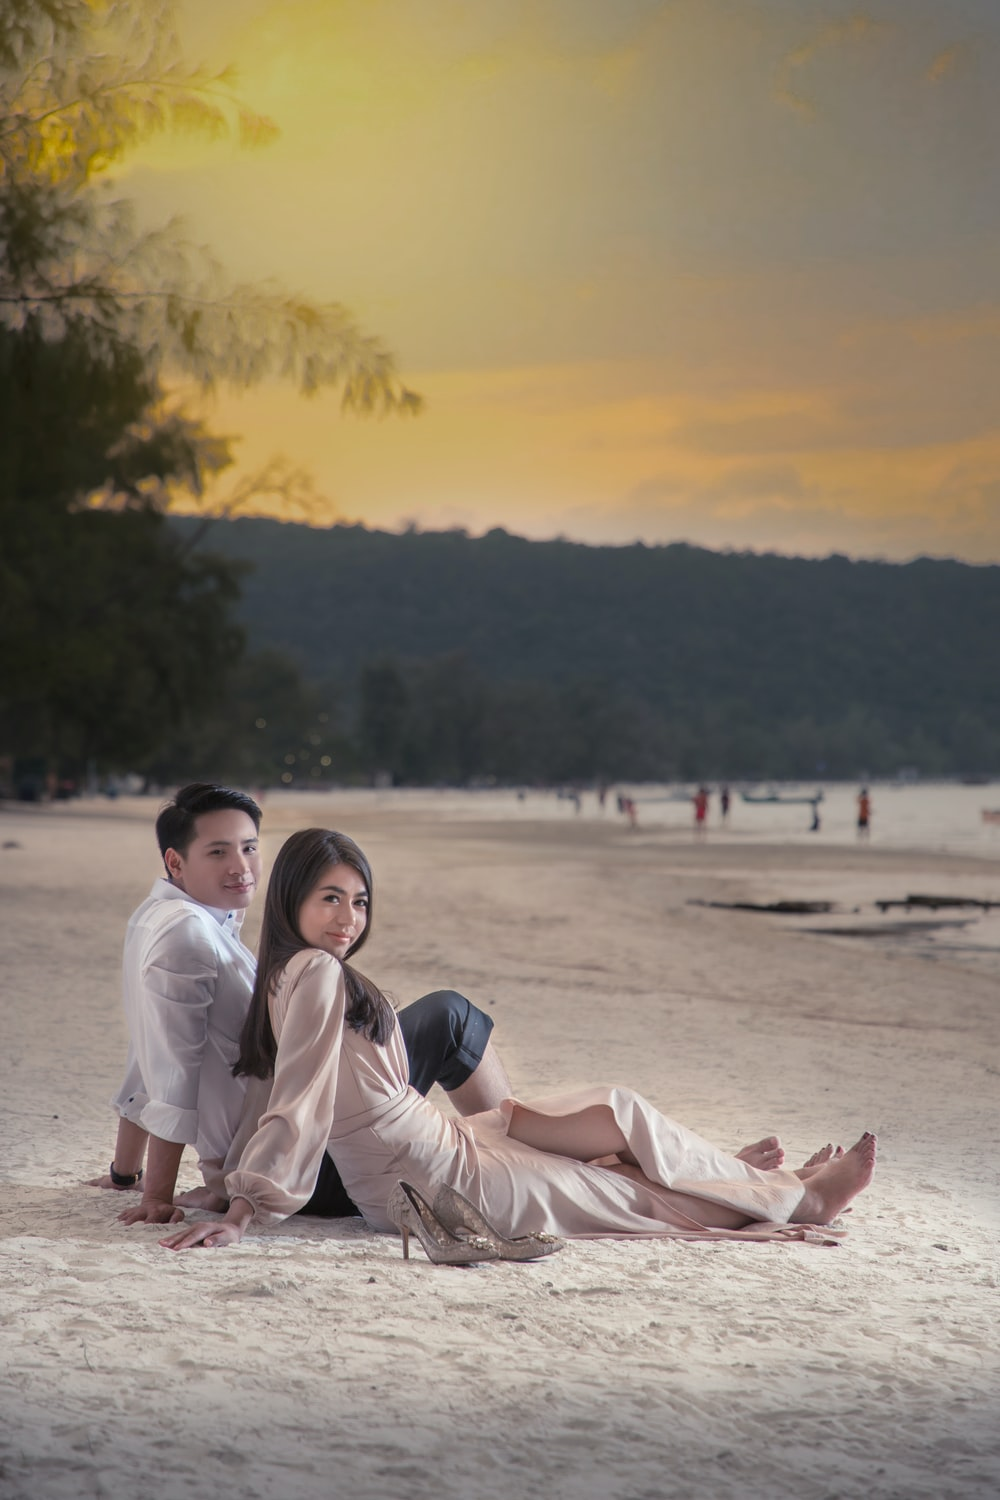 man and woman sitting on sand during sunset